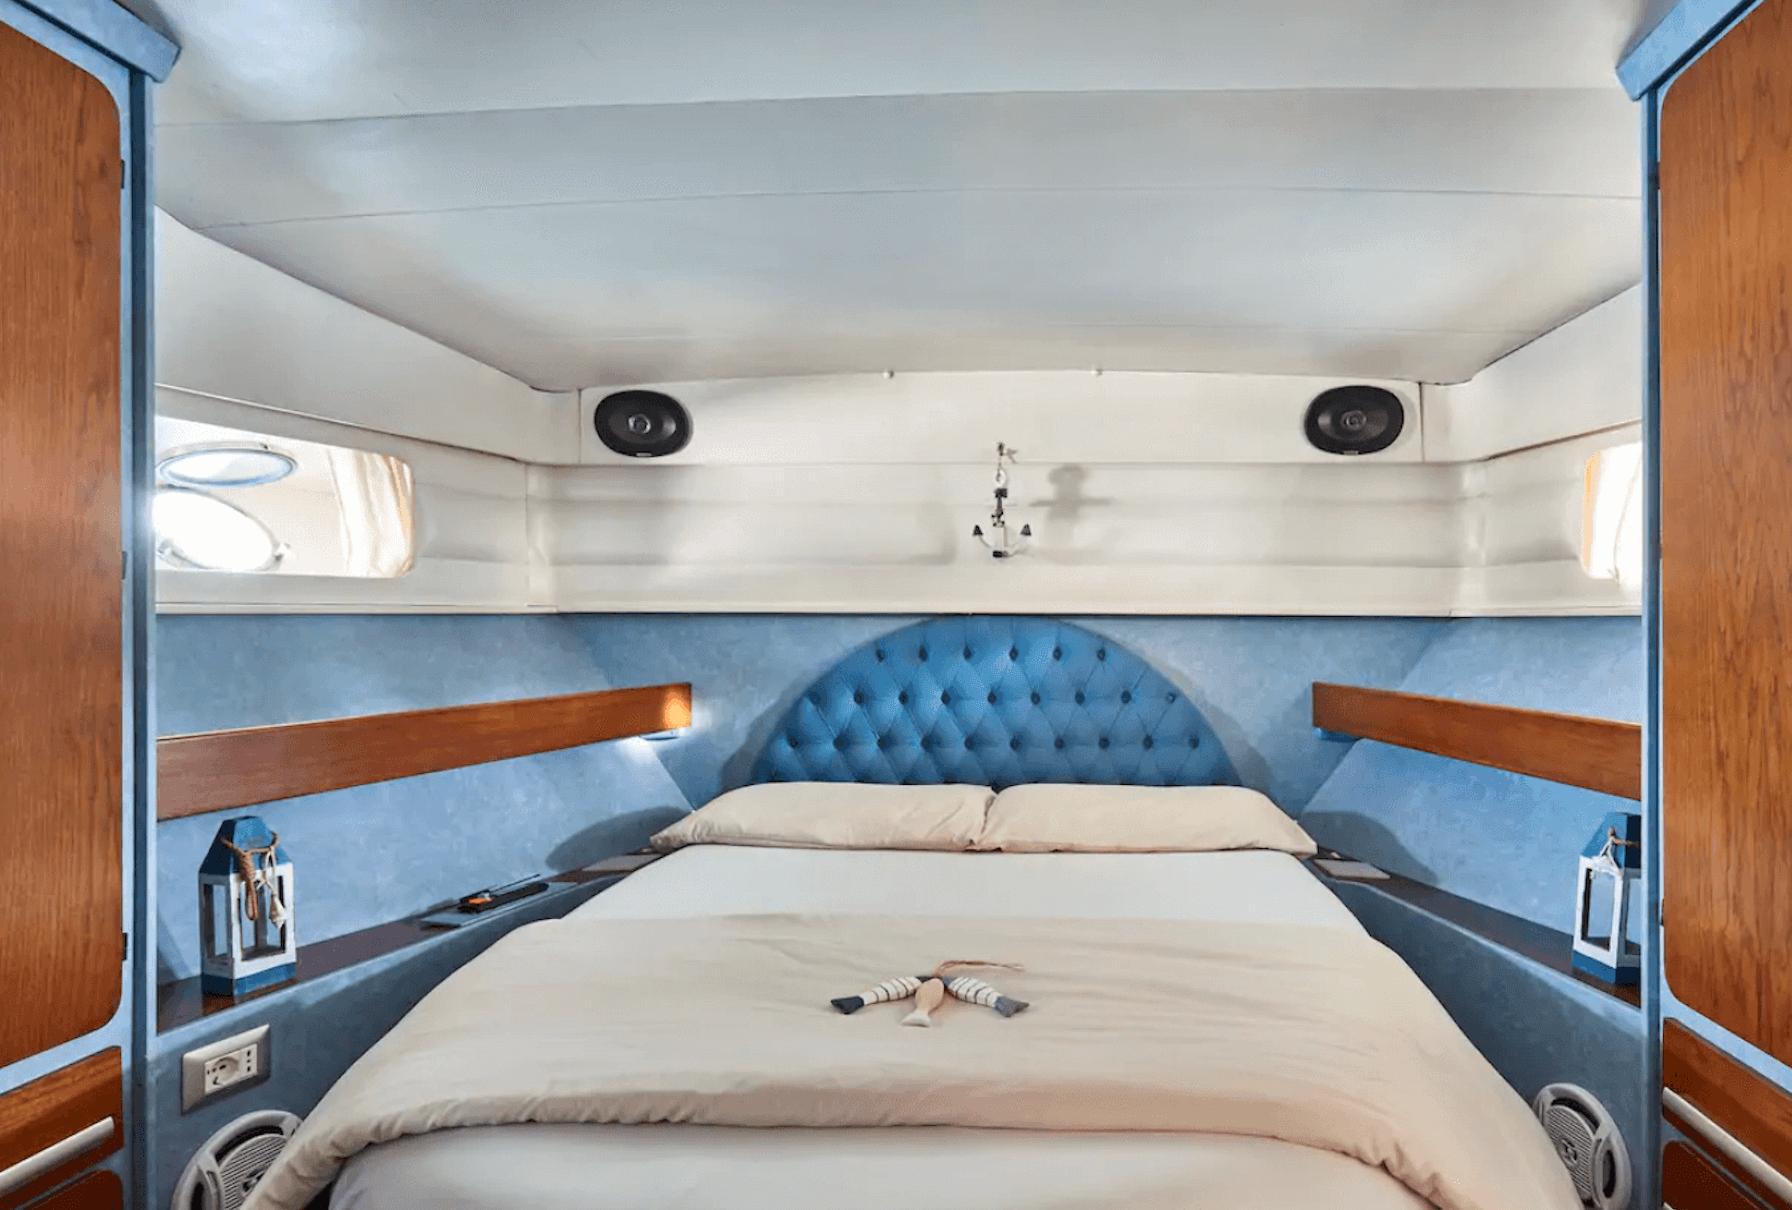 an image of an boat airbnb in Lake Como, Italy